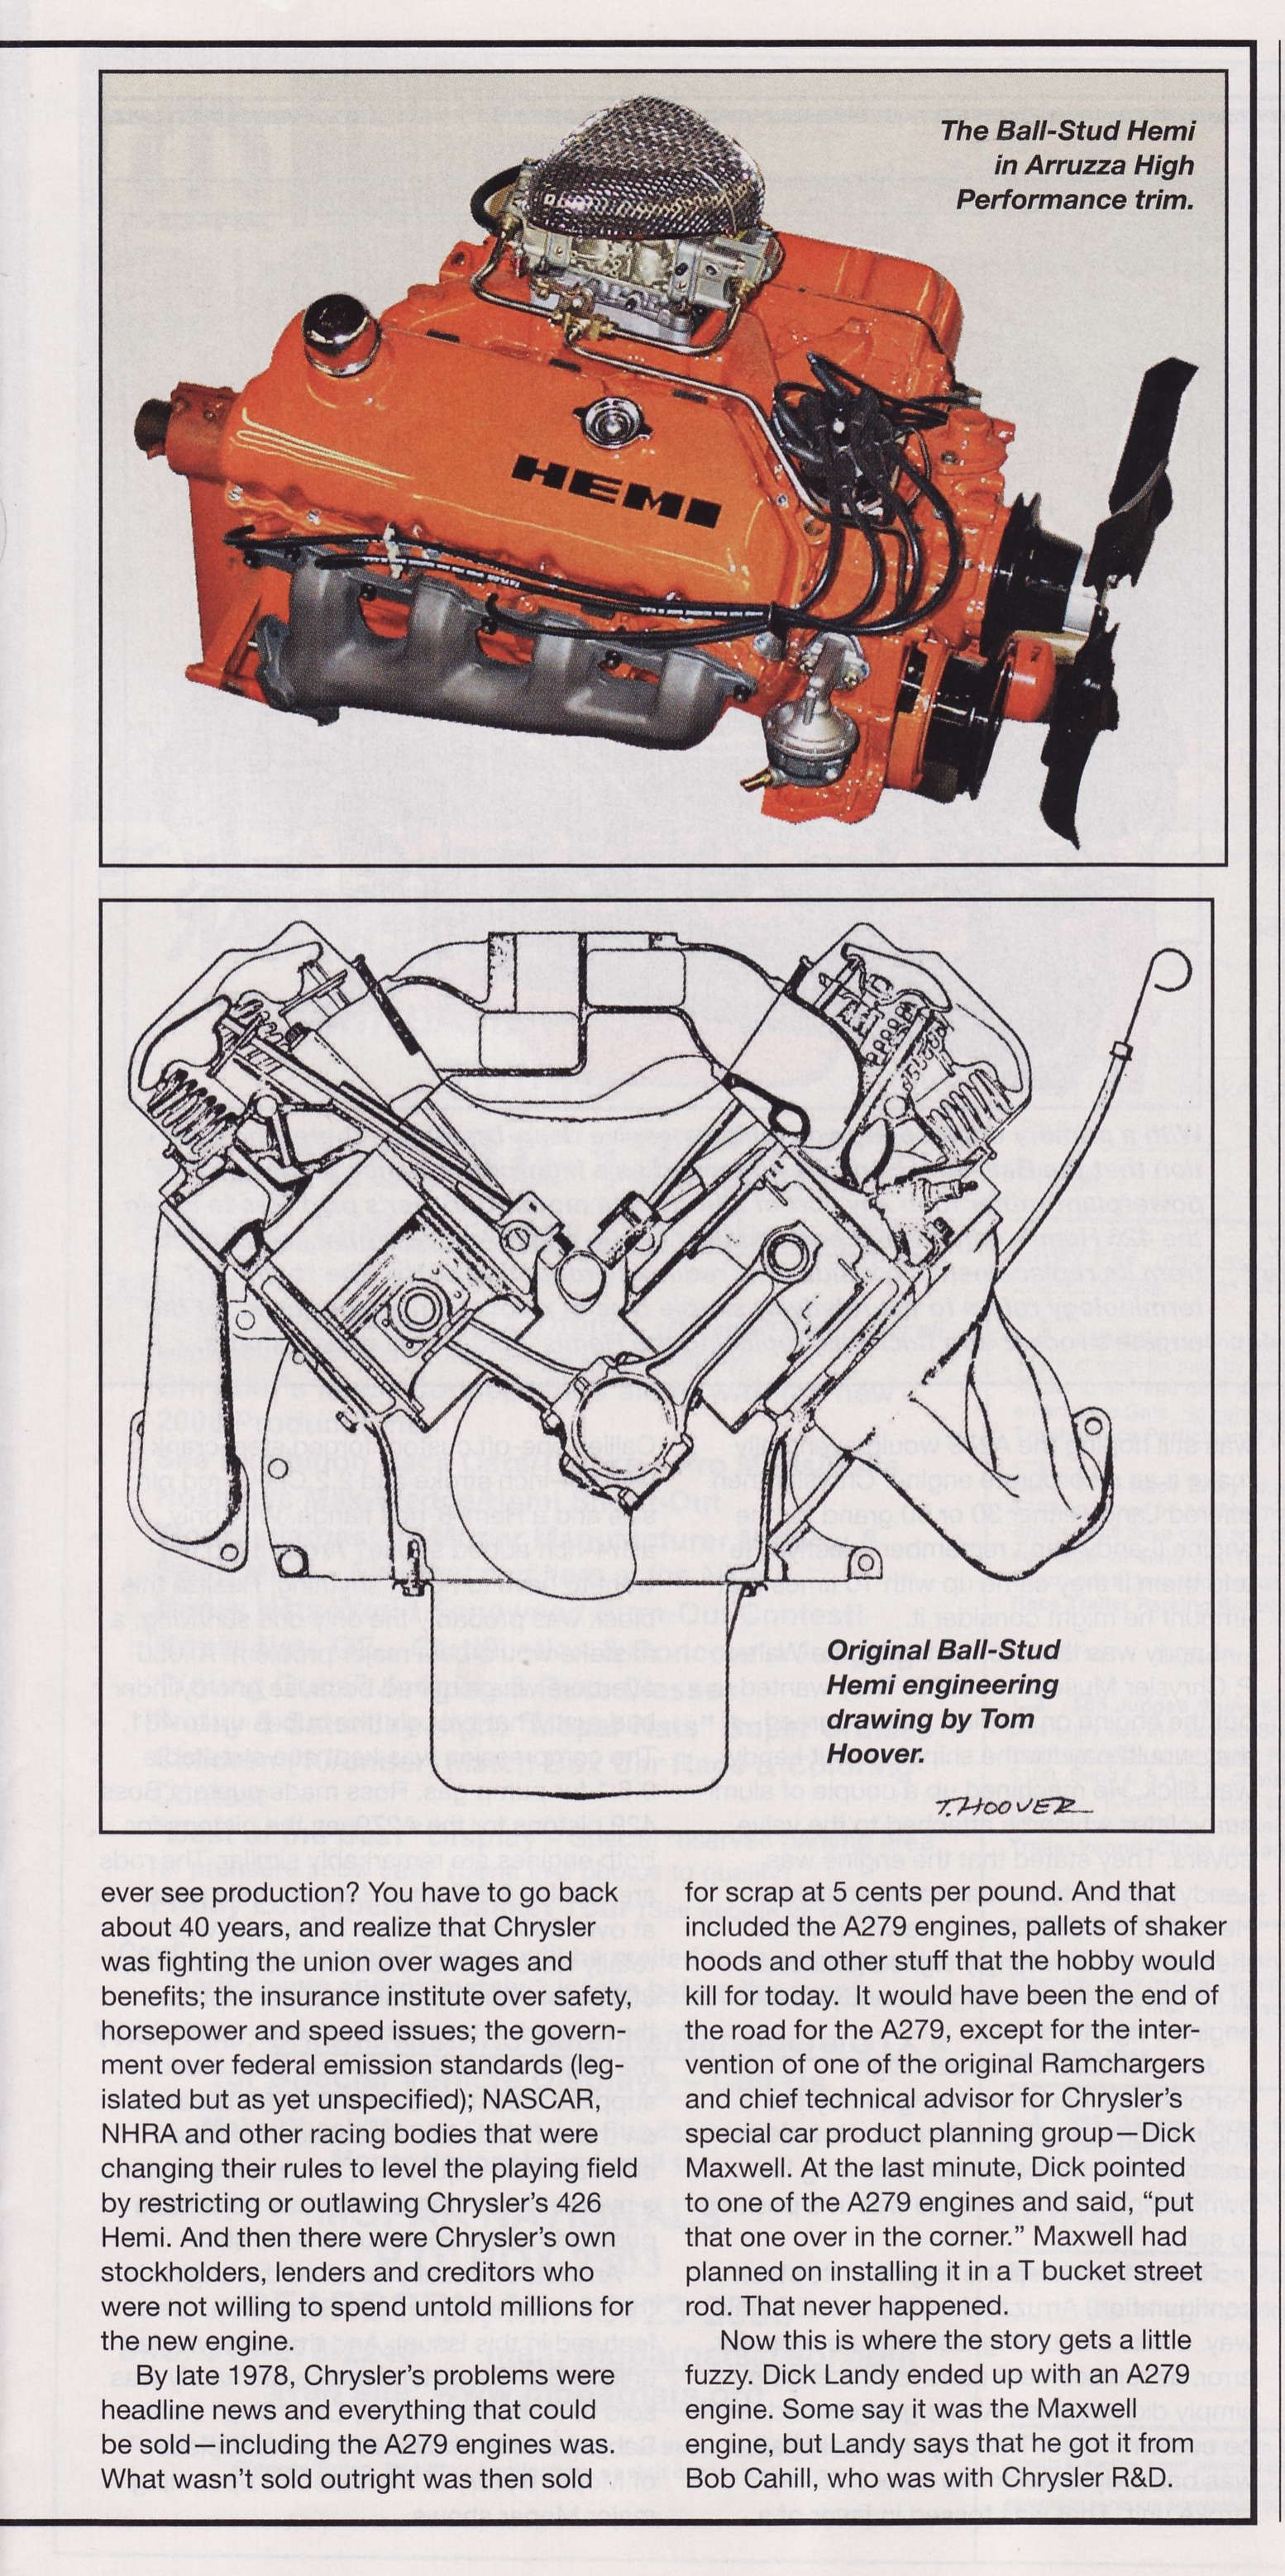 ball stud hemi page 2 hemi engine car engine chrysler hemi truck [ 1554 x 3116 Pixel ]